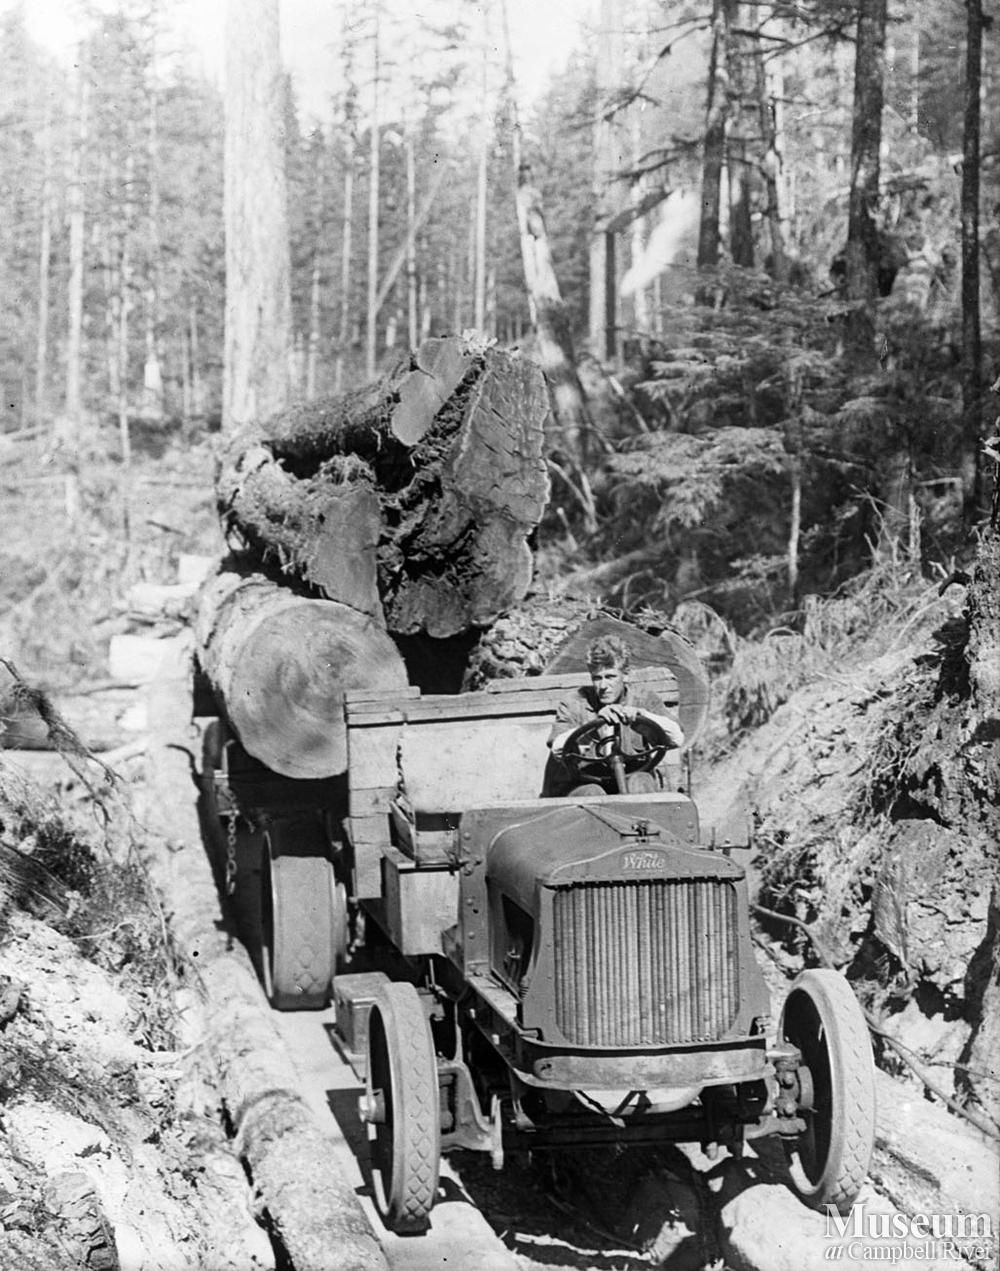 A Loaded White Logging Truck Early Truck Logging Using A White